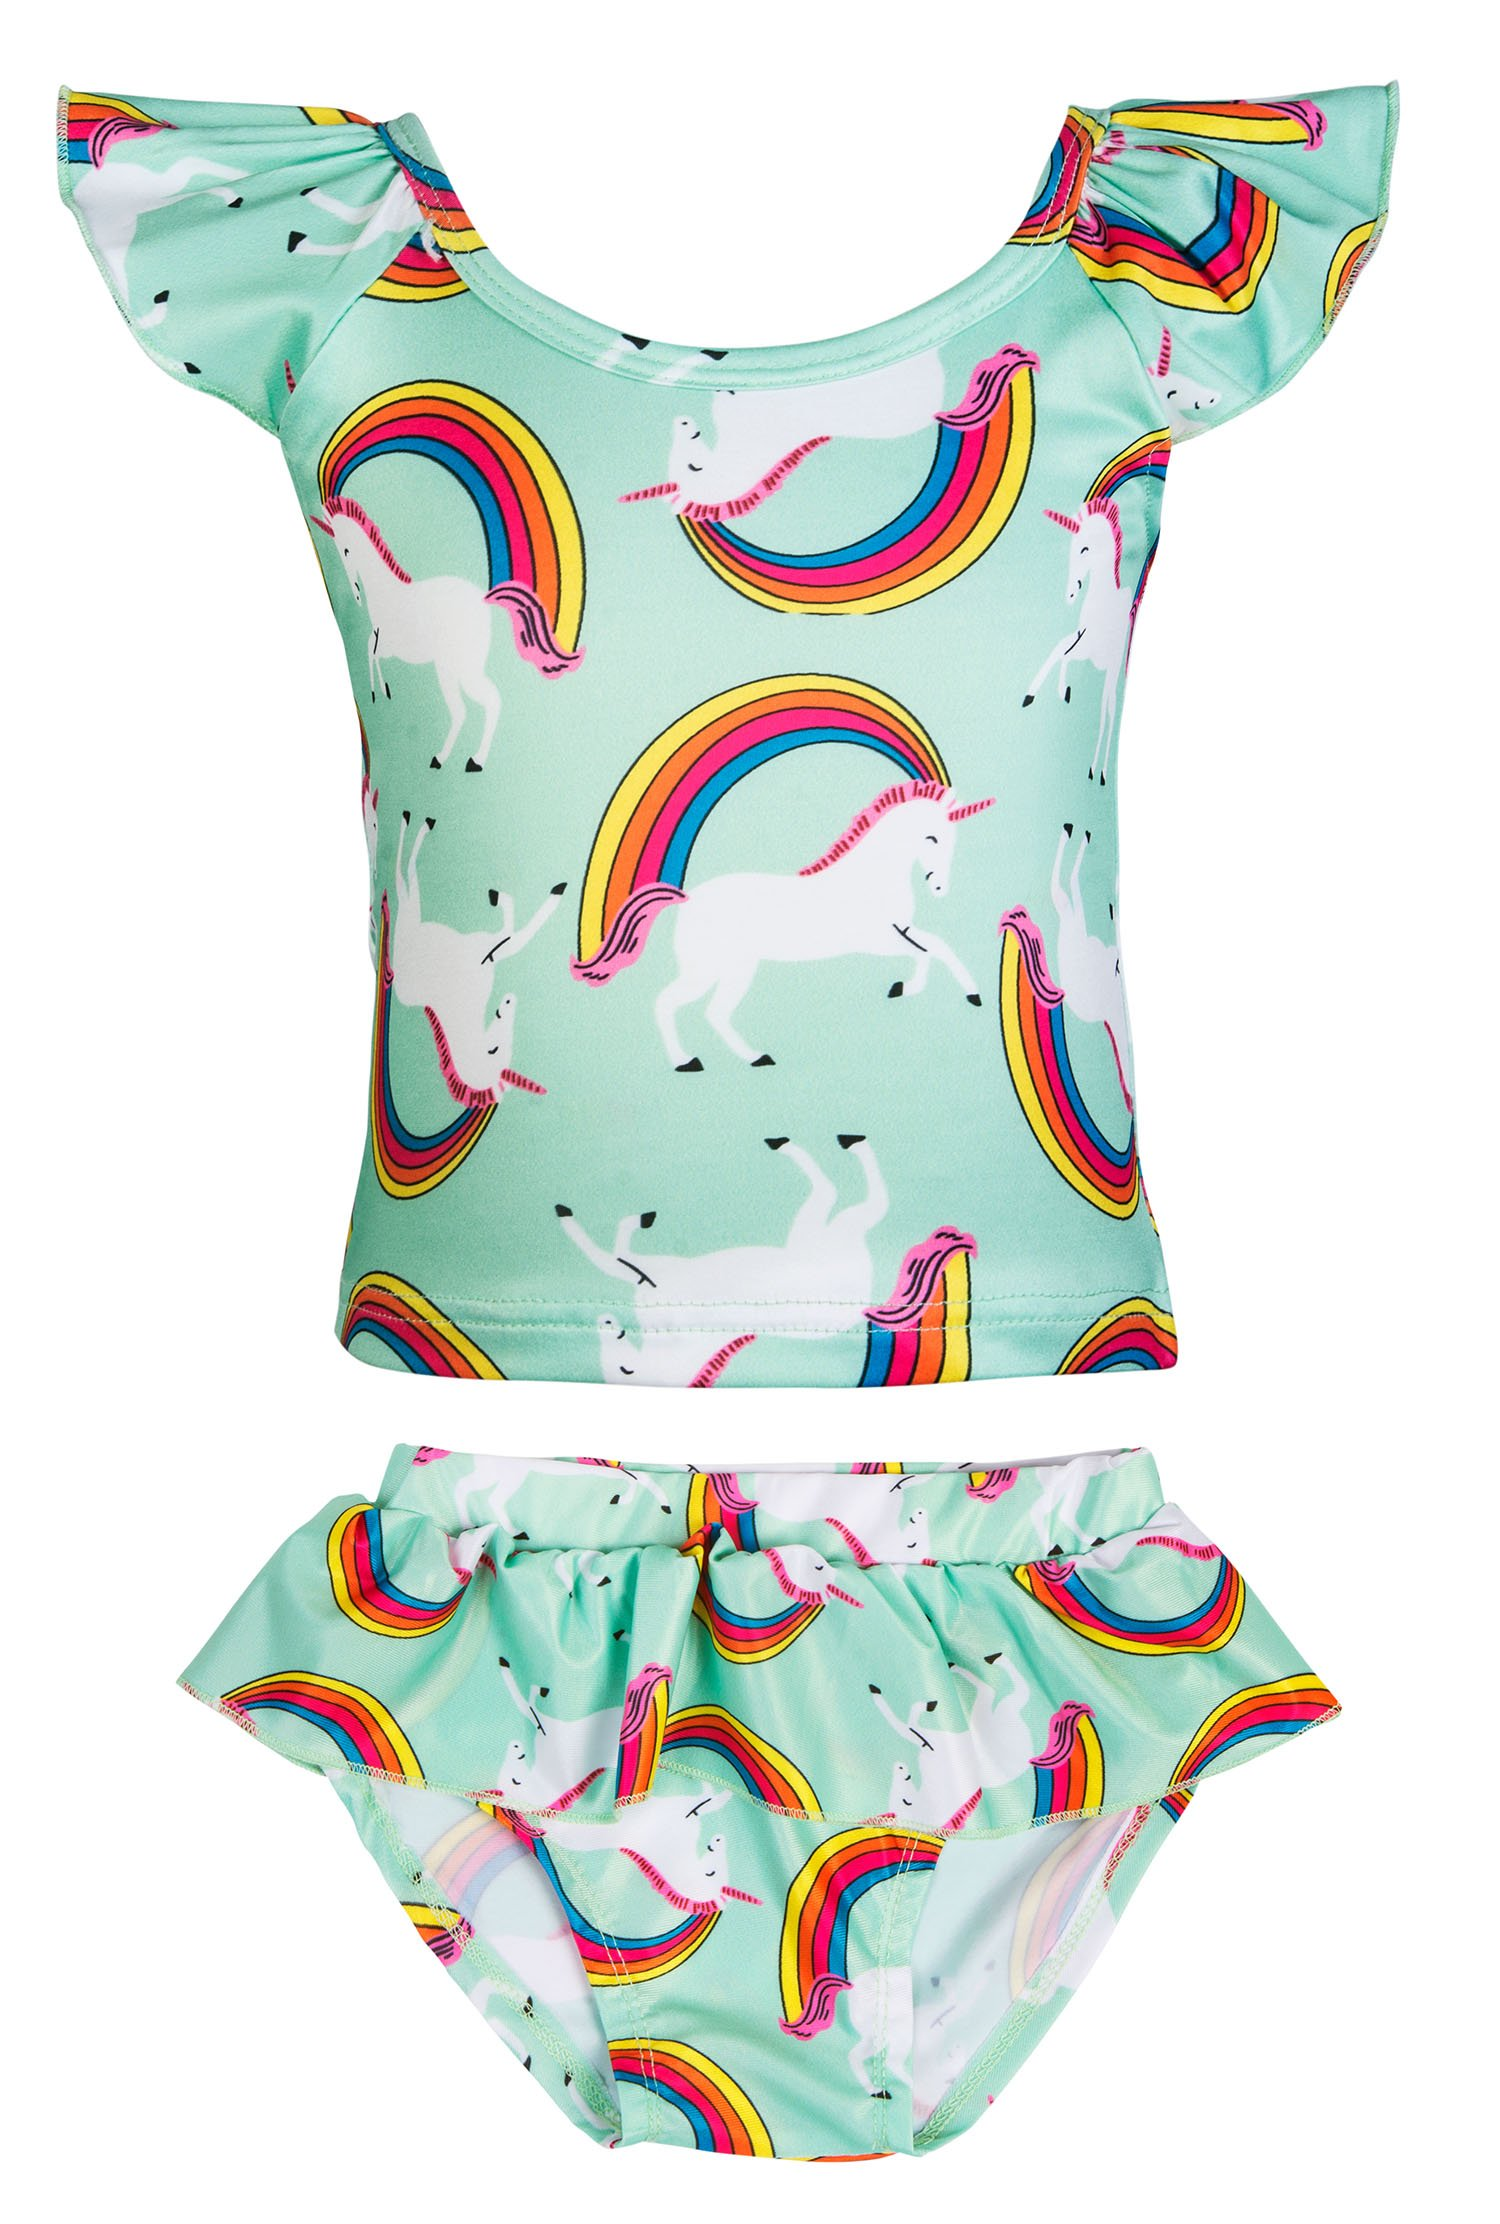 KABETY Girls Rainbow Unicorn Swimsuit Two Pieces Swimwear Bathing Suit Bikinis (Green, 3T)